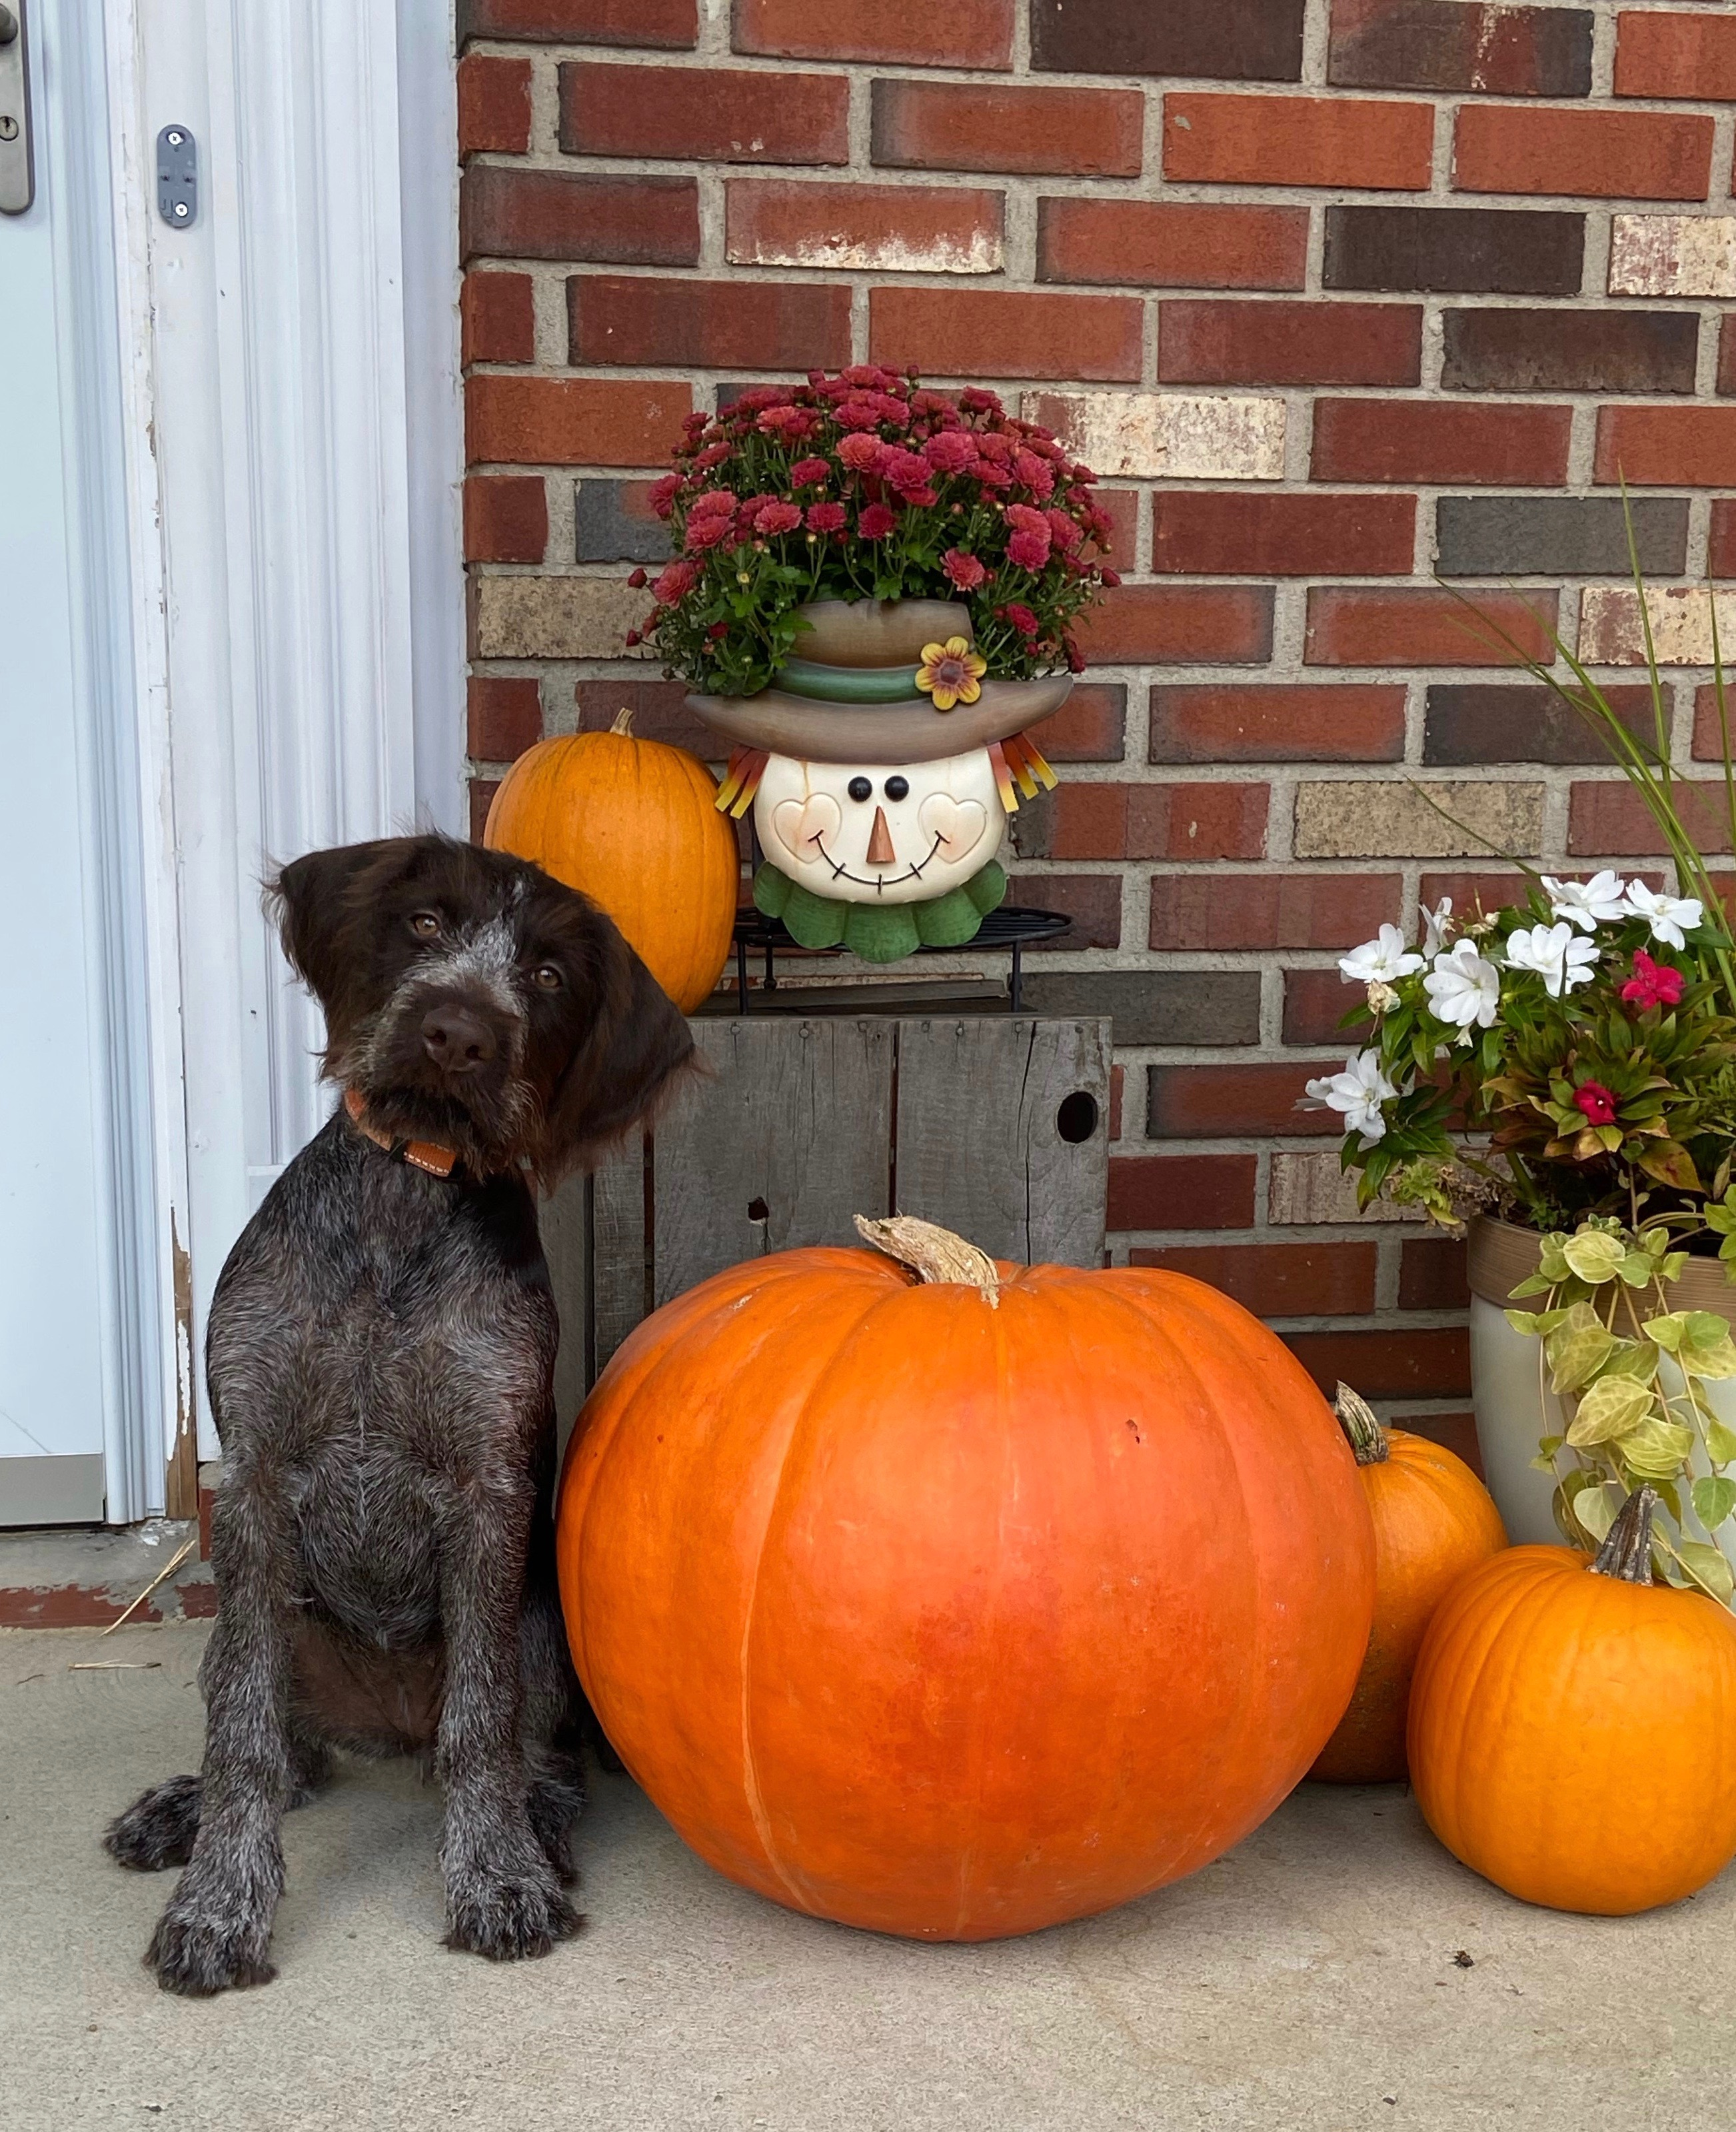 Wingard family dog, Scout, enjoying the fall scenery! Submitted by Nate Wingard.